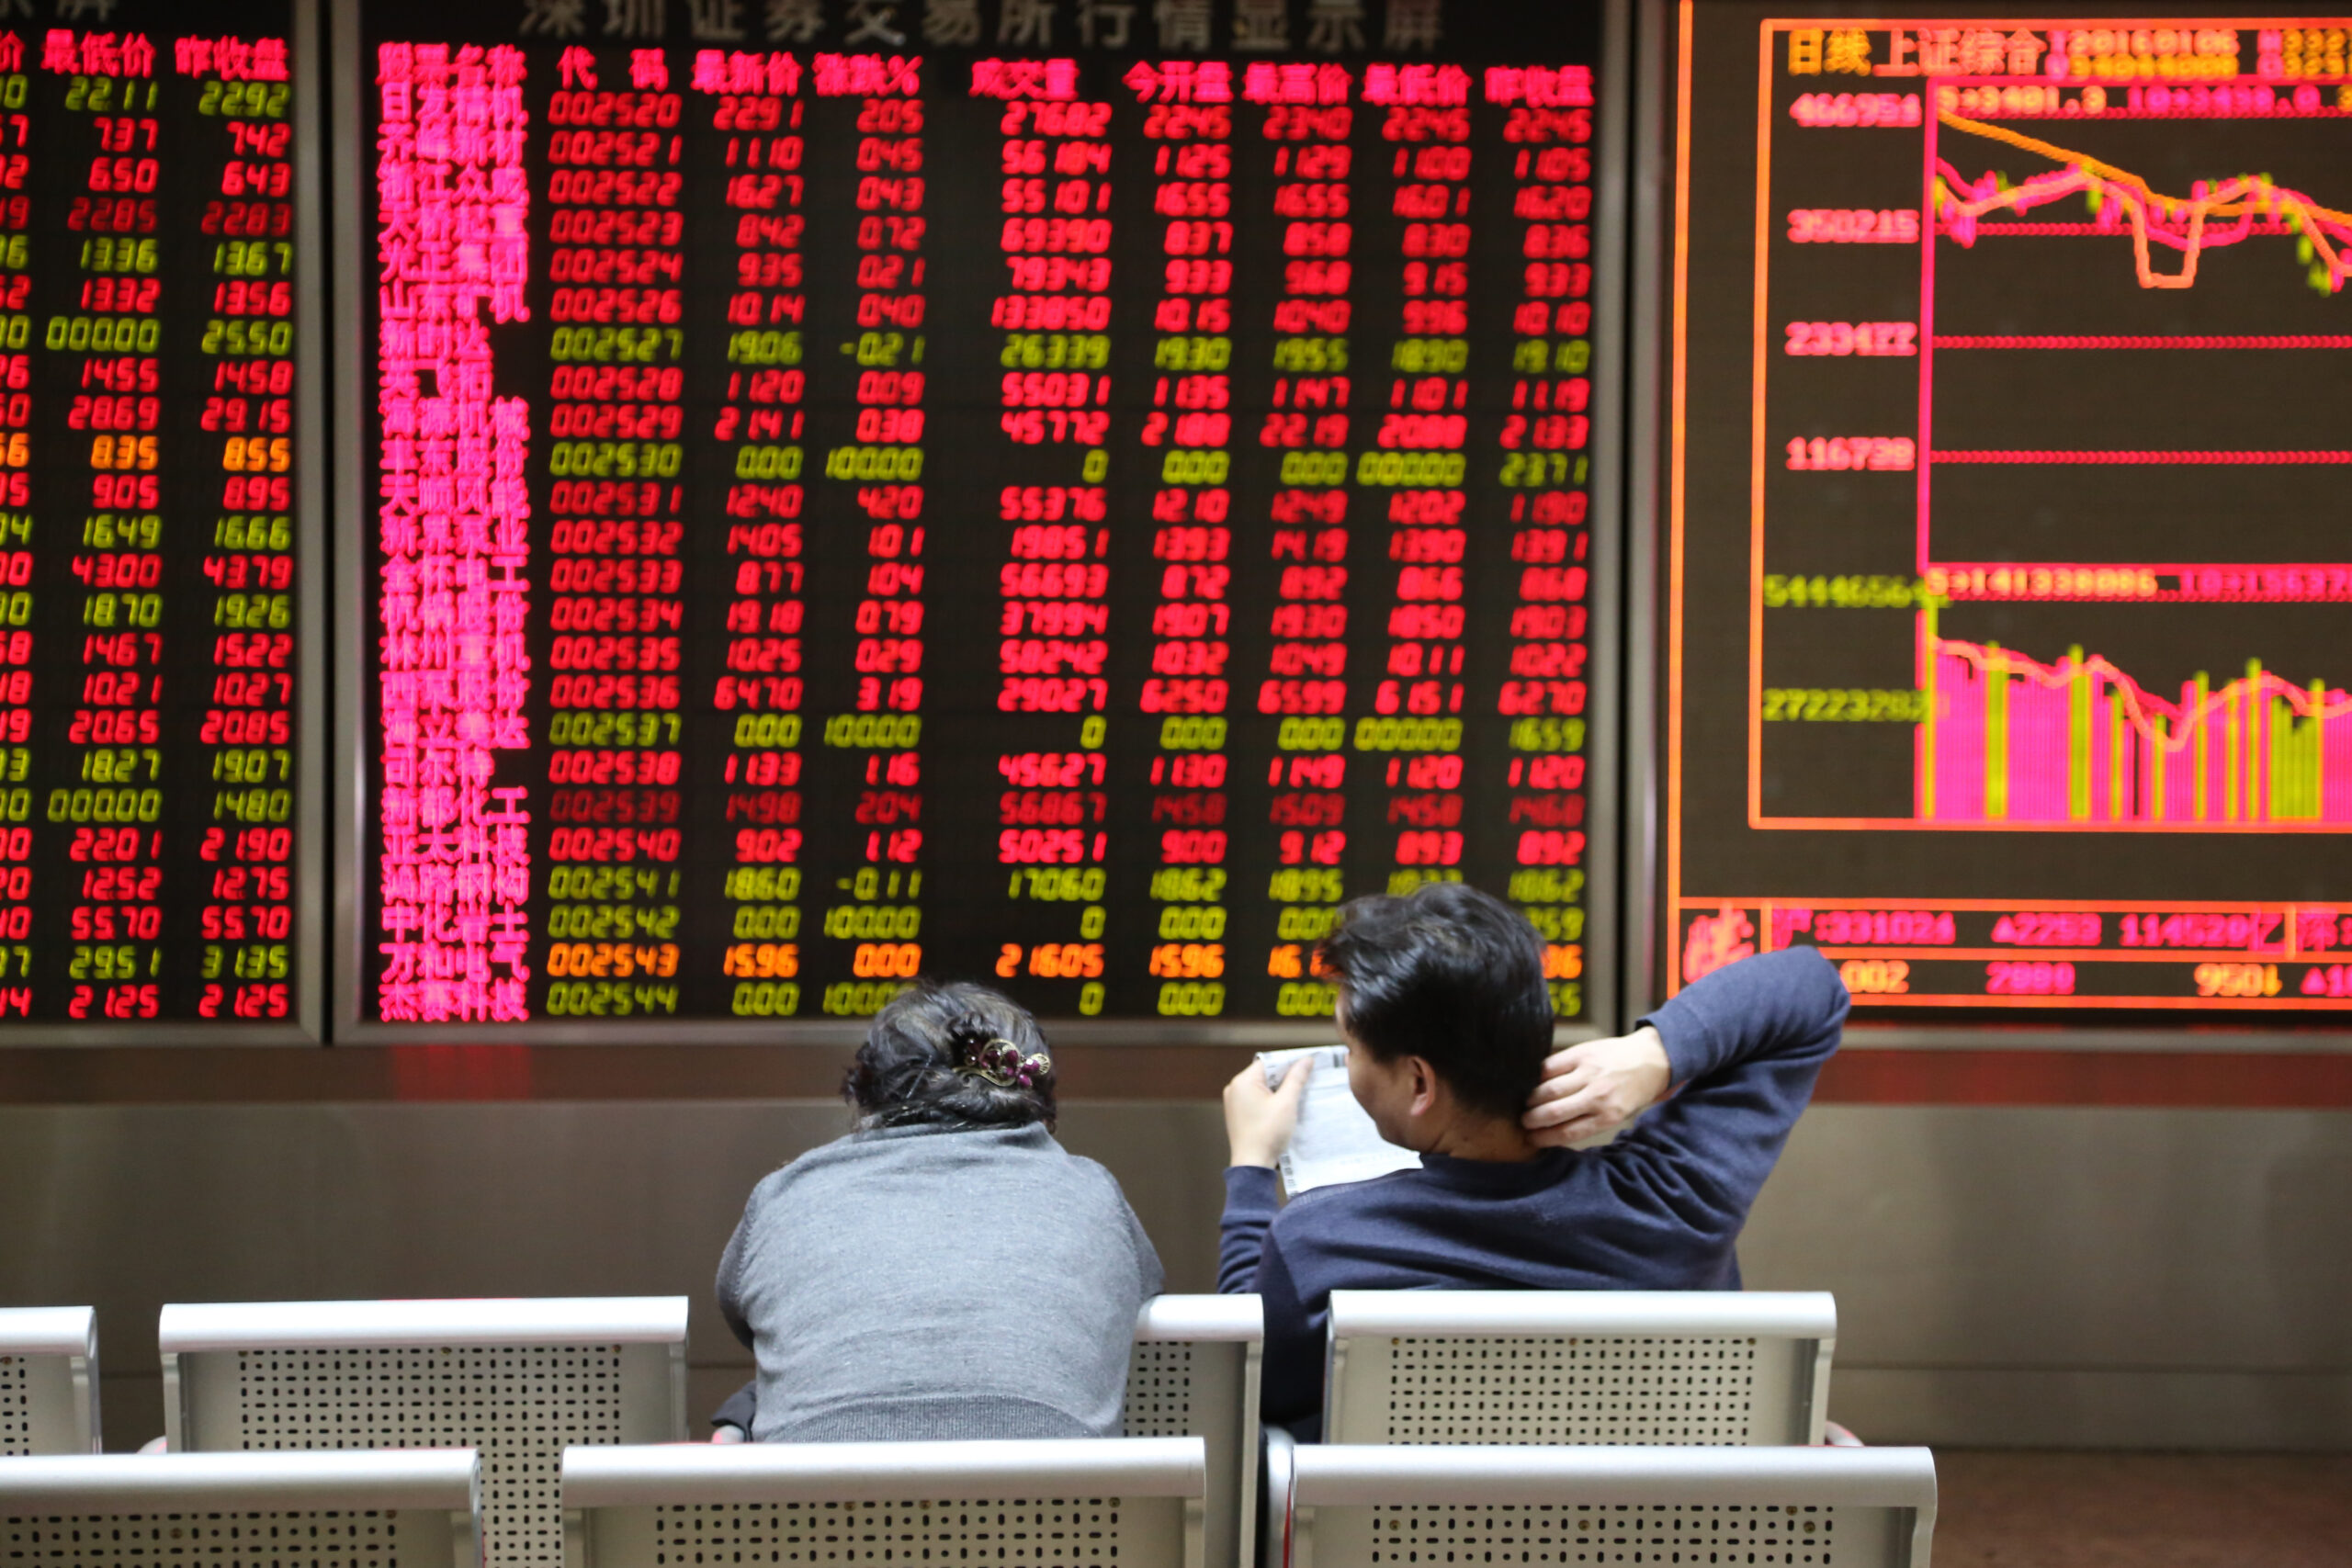 Bulls in a China shop: New Beijing stock exchange to support SMEs